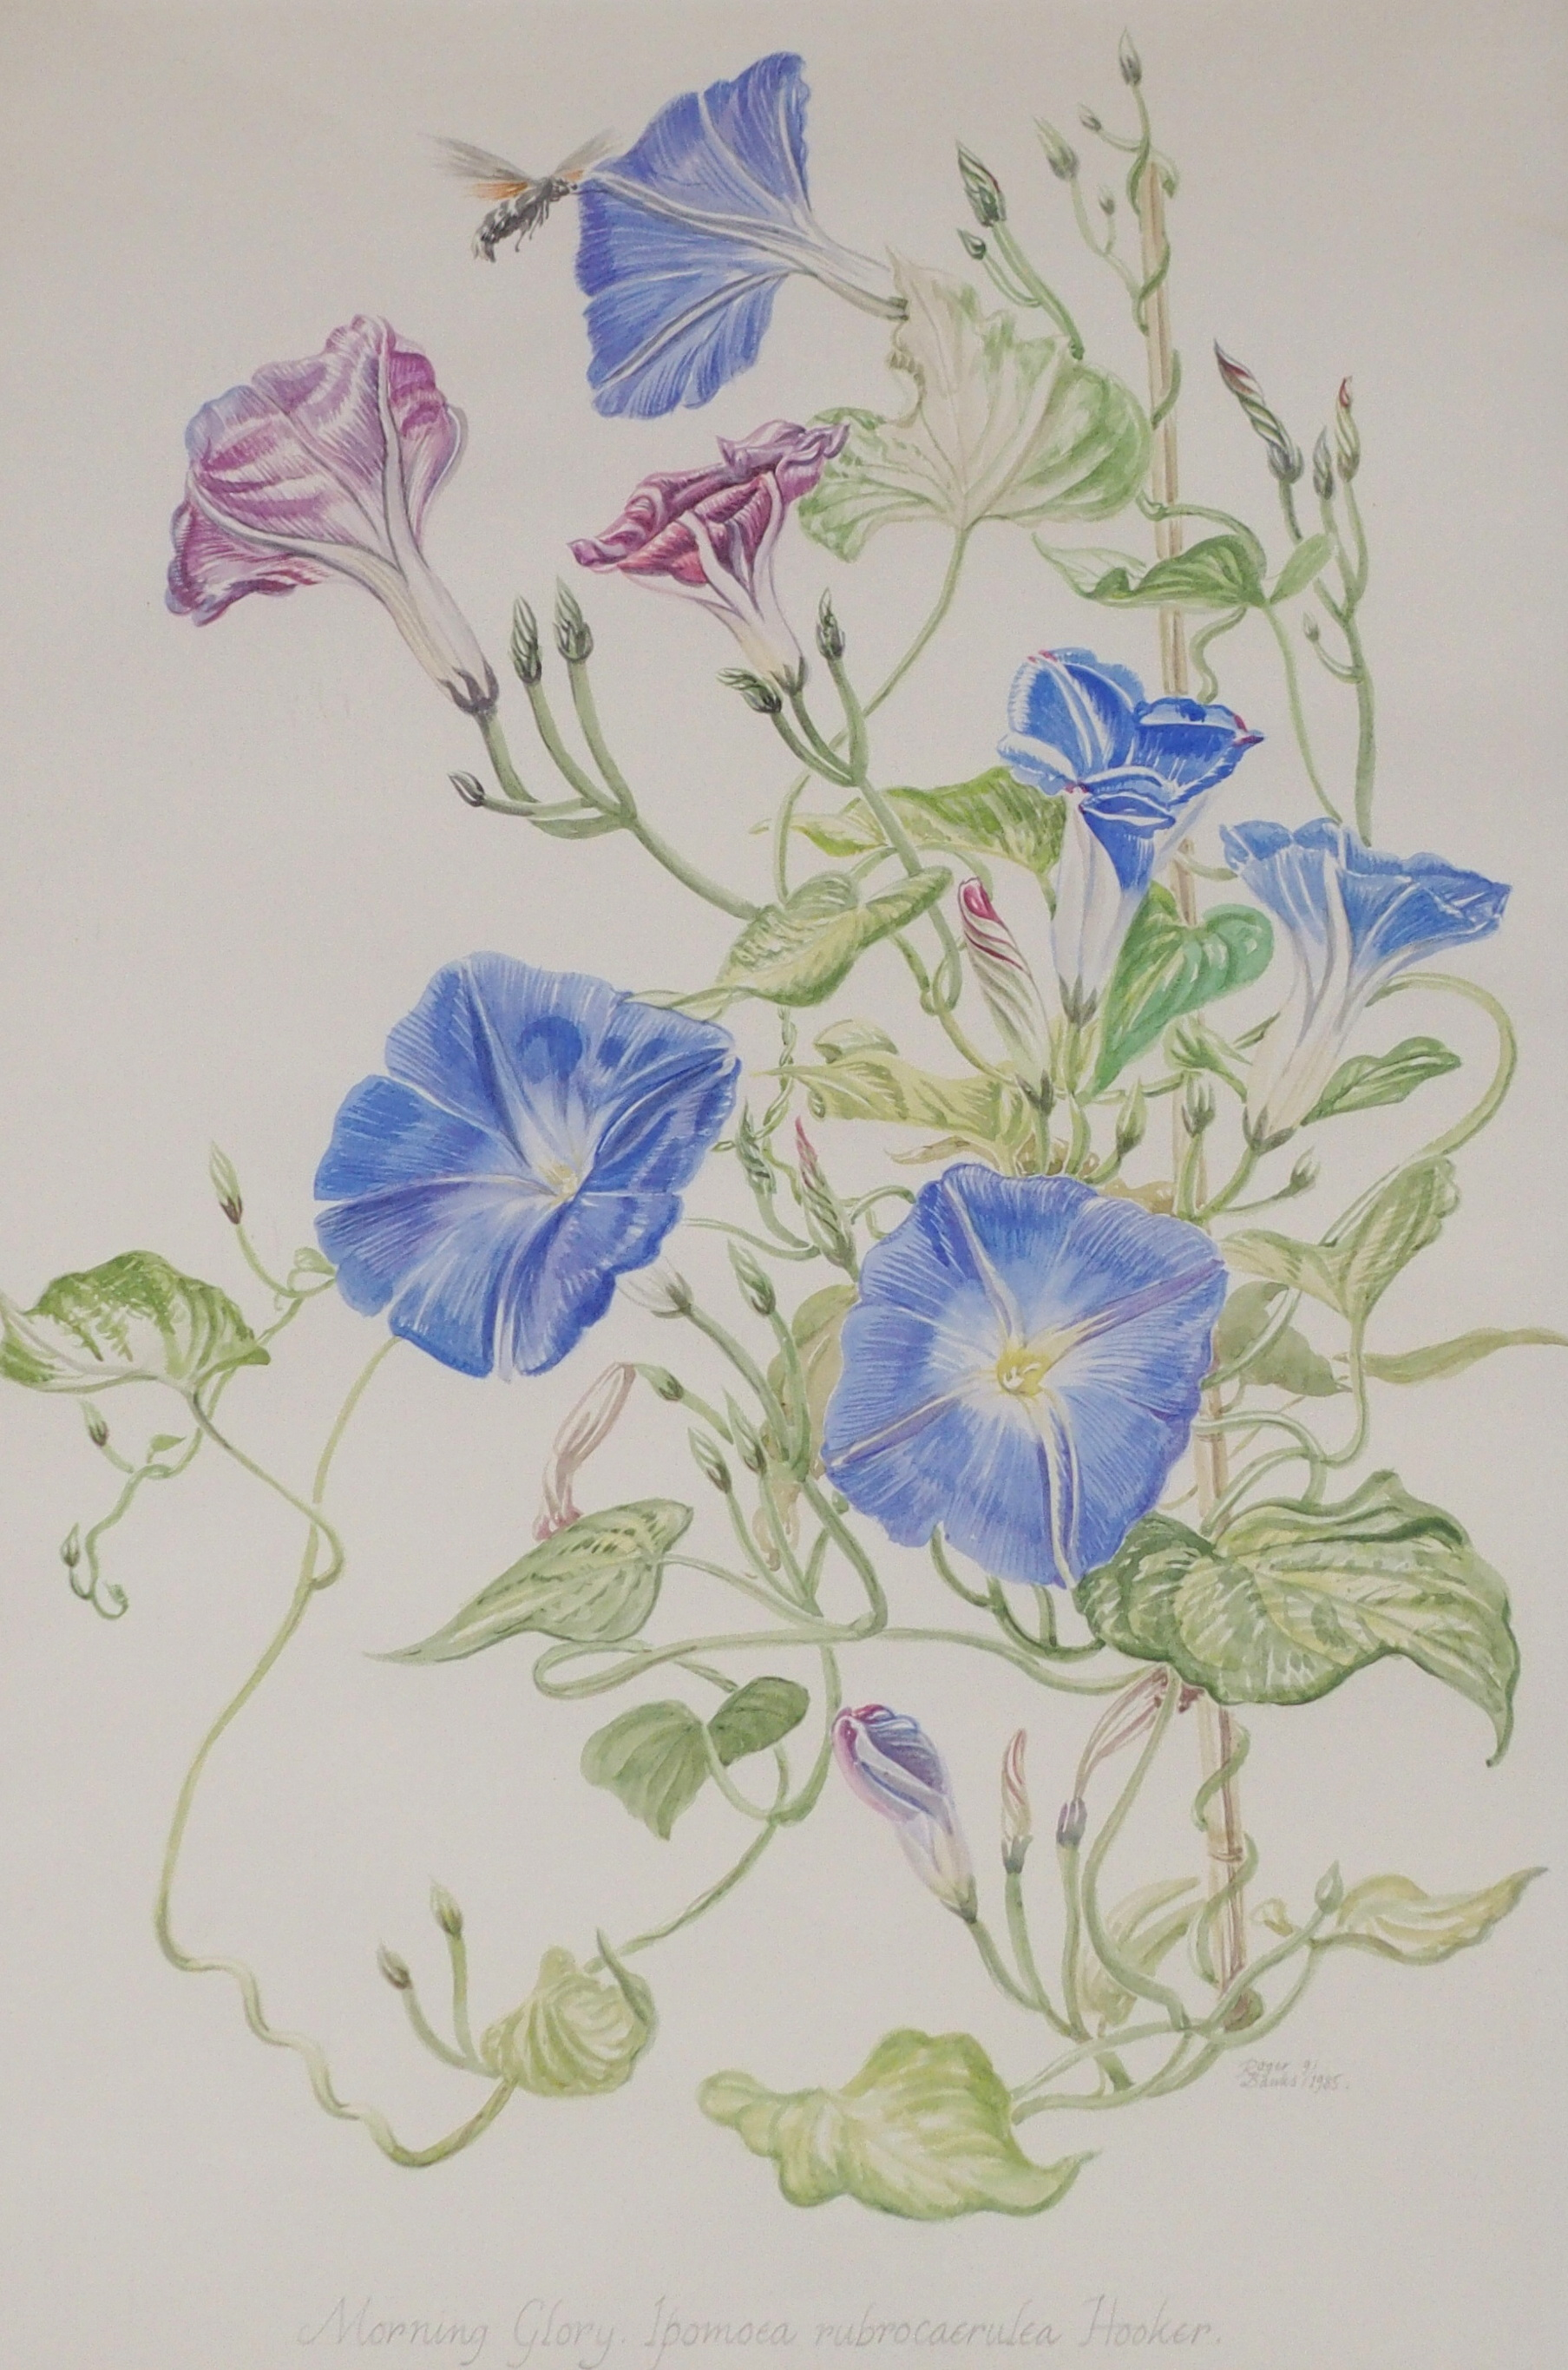 •ROGER BANKS (SCOTTISH 1929-2008) MORNING GLORY watercolour, signed, inscribed and dated, 1985, 52 x